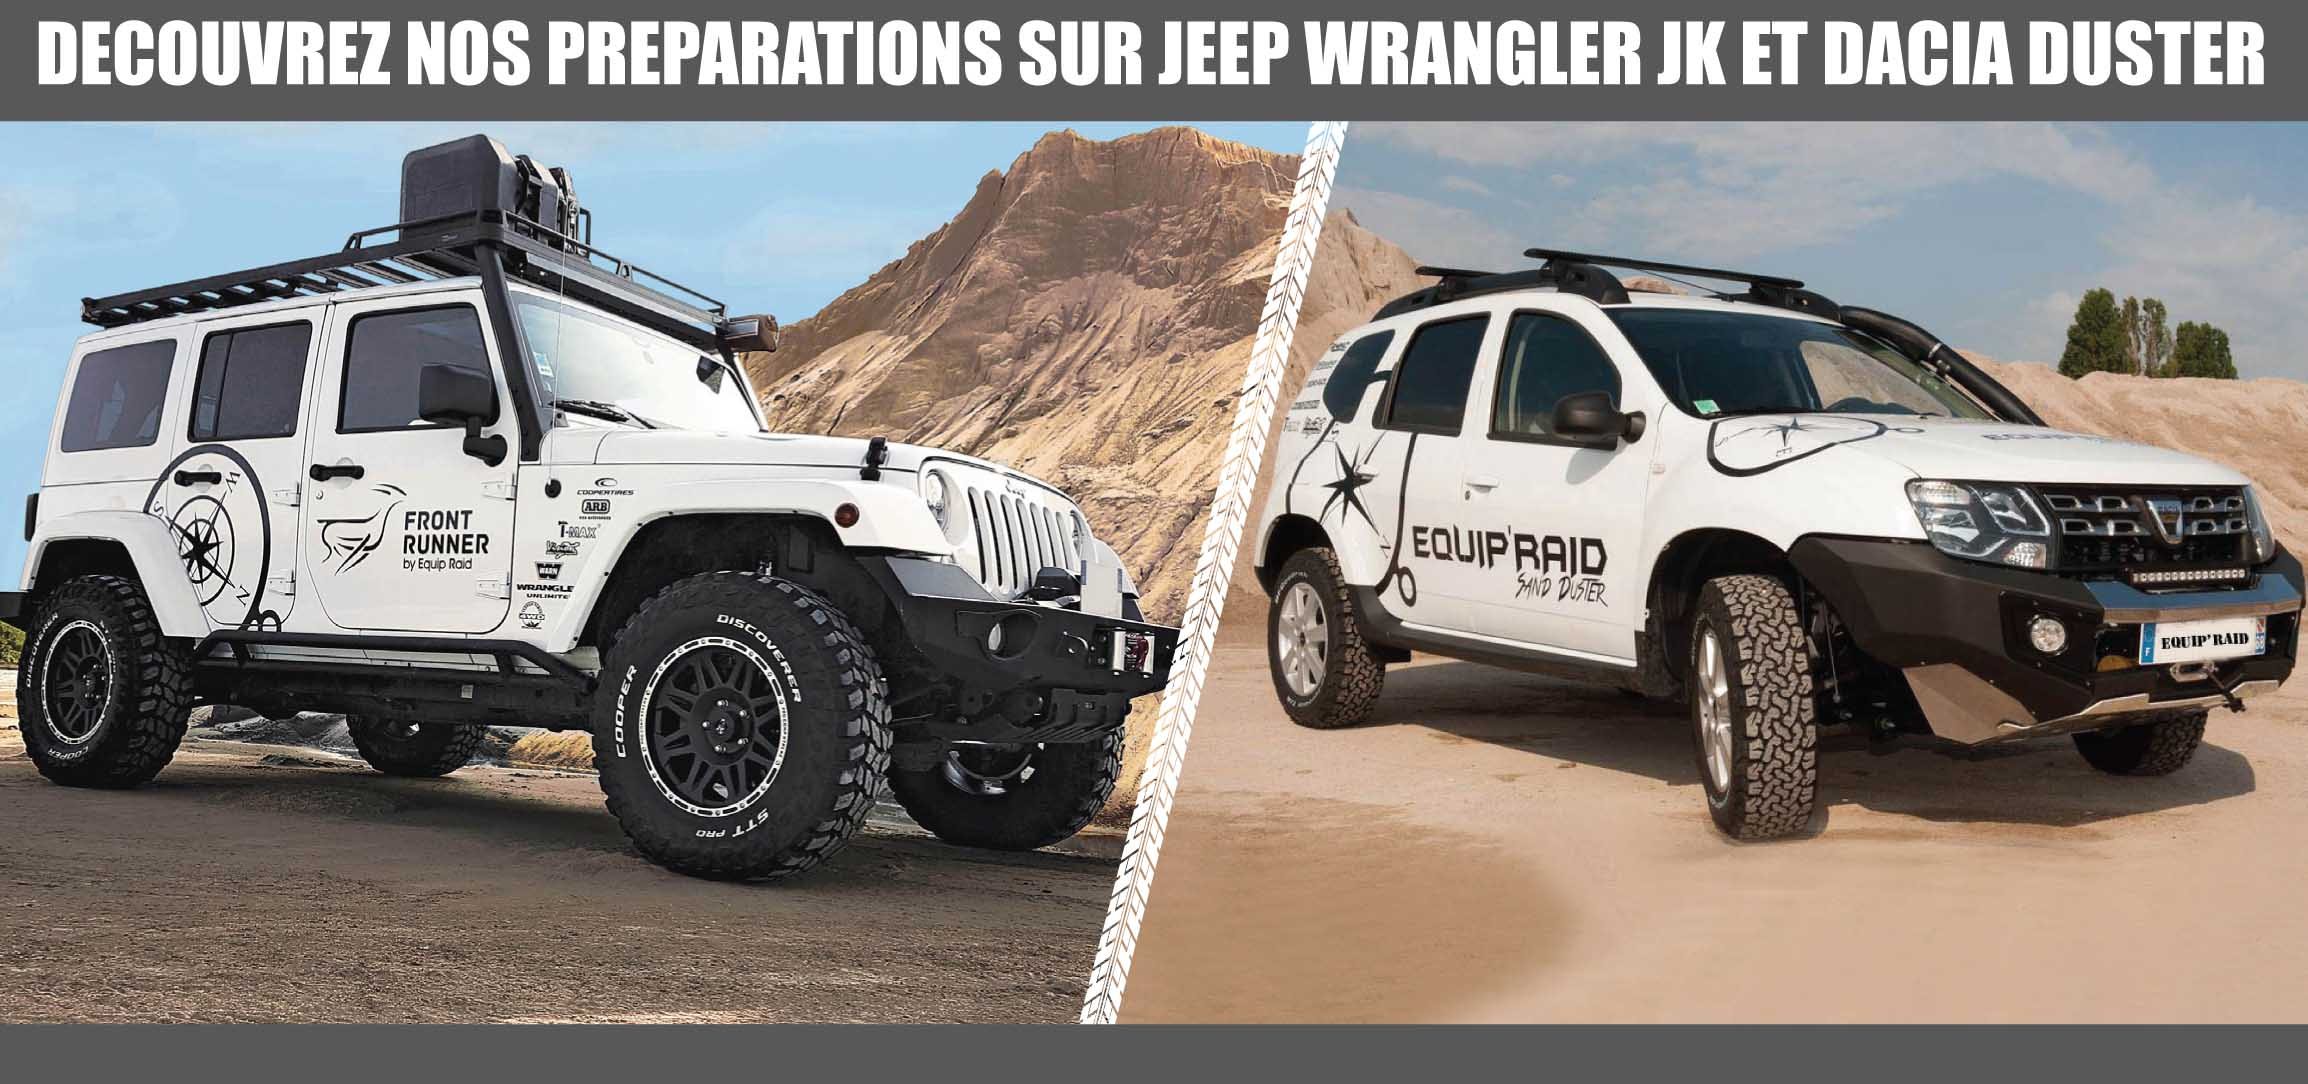 preparation jeep wrangler jk et dacia duster